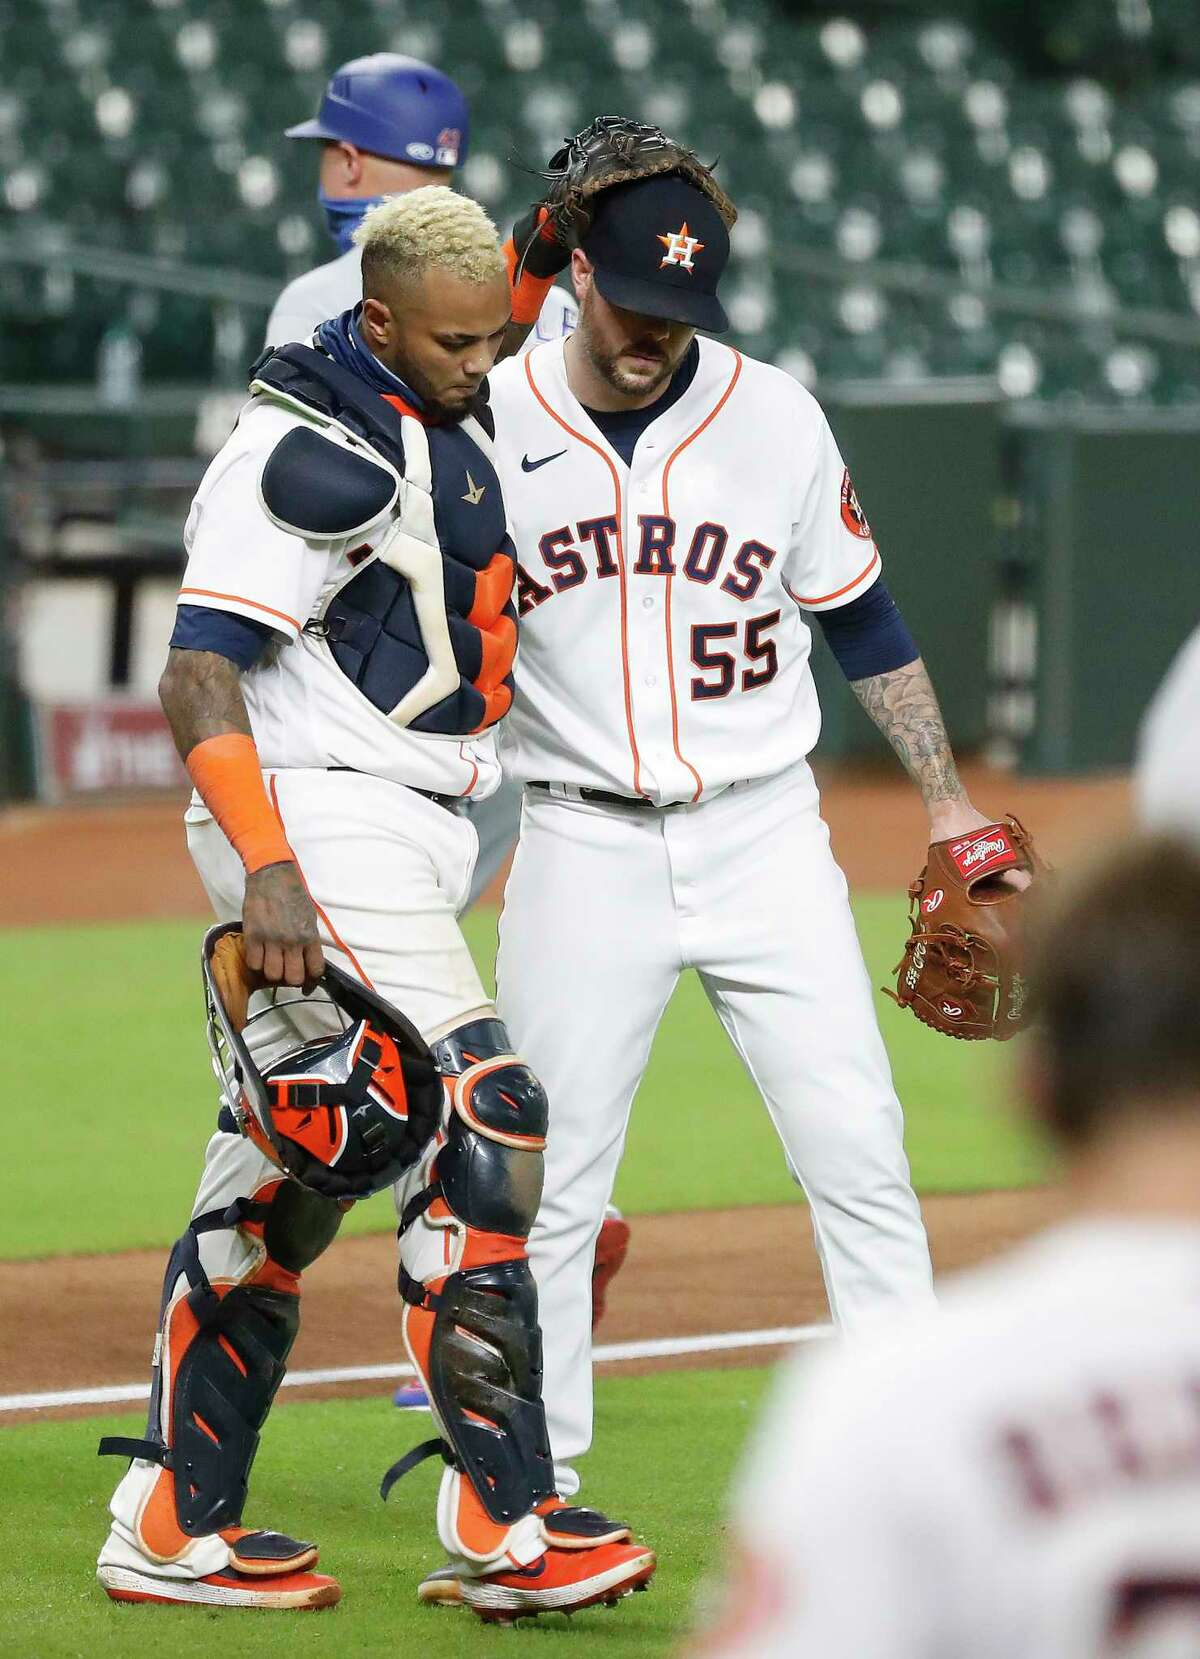 Houston Astros catcher Martin Maldonado (15) hugs pitcher Ryan Pressly (55) after Texas Rangers Nick Solak struck out swinging to end an MLB baseball game at Minute Maid Park, Wednesday, September 2, 2020, in Houston. Astros won 2-1 against the Texas Rangers.